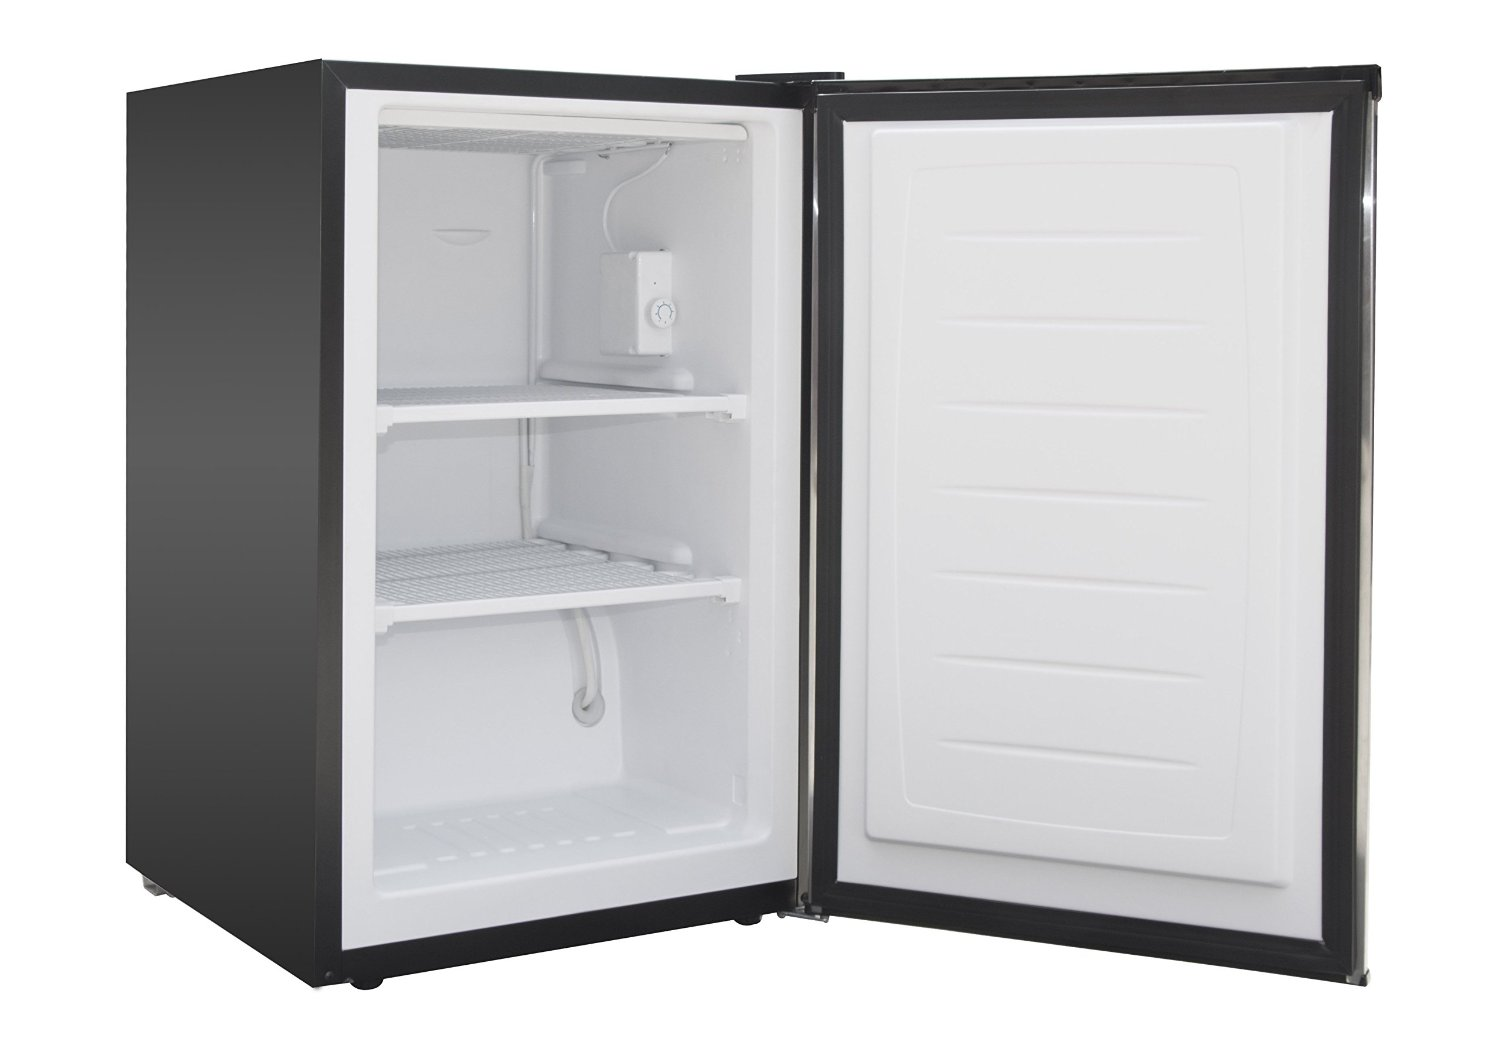 danby 4.4-cu ft refrigerator manual